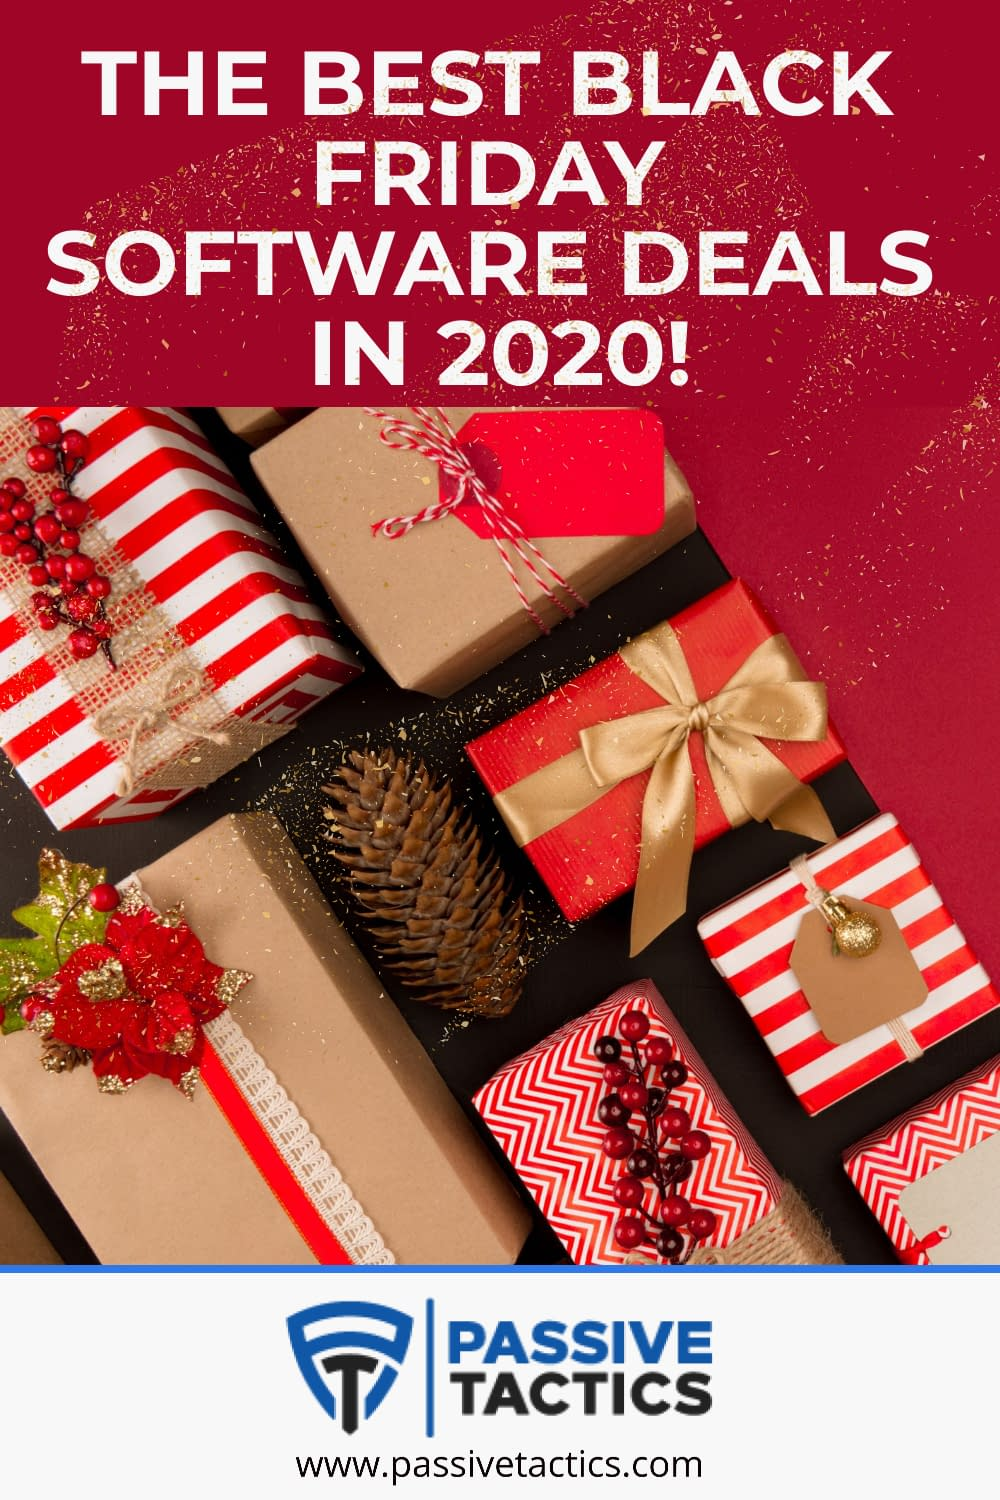 The Best Black Friday Software Deals In 2020!